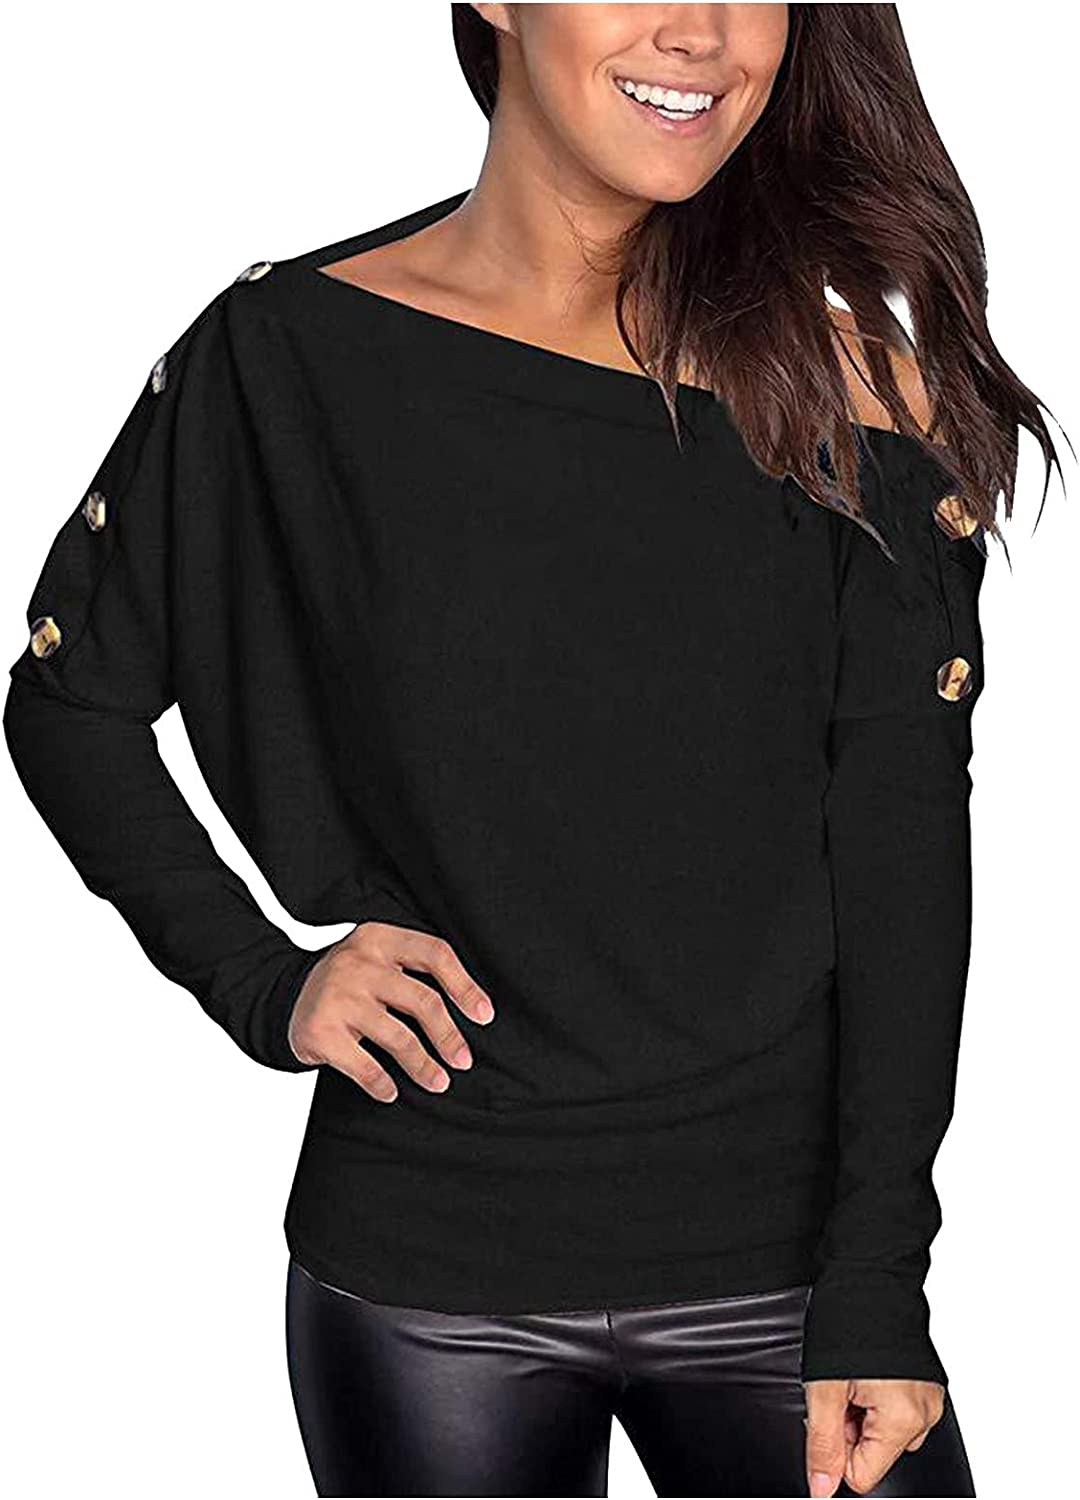 Womens Waffle Knit Tunic Tops Long Sleeve Loose Fitting Daily Casual Button Up Basic Henley Tops